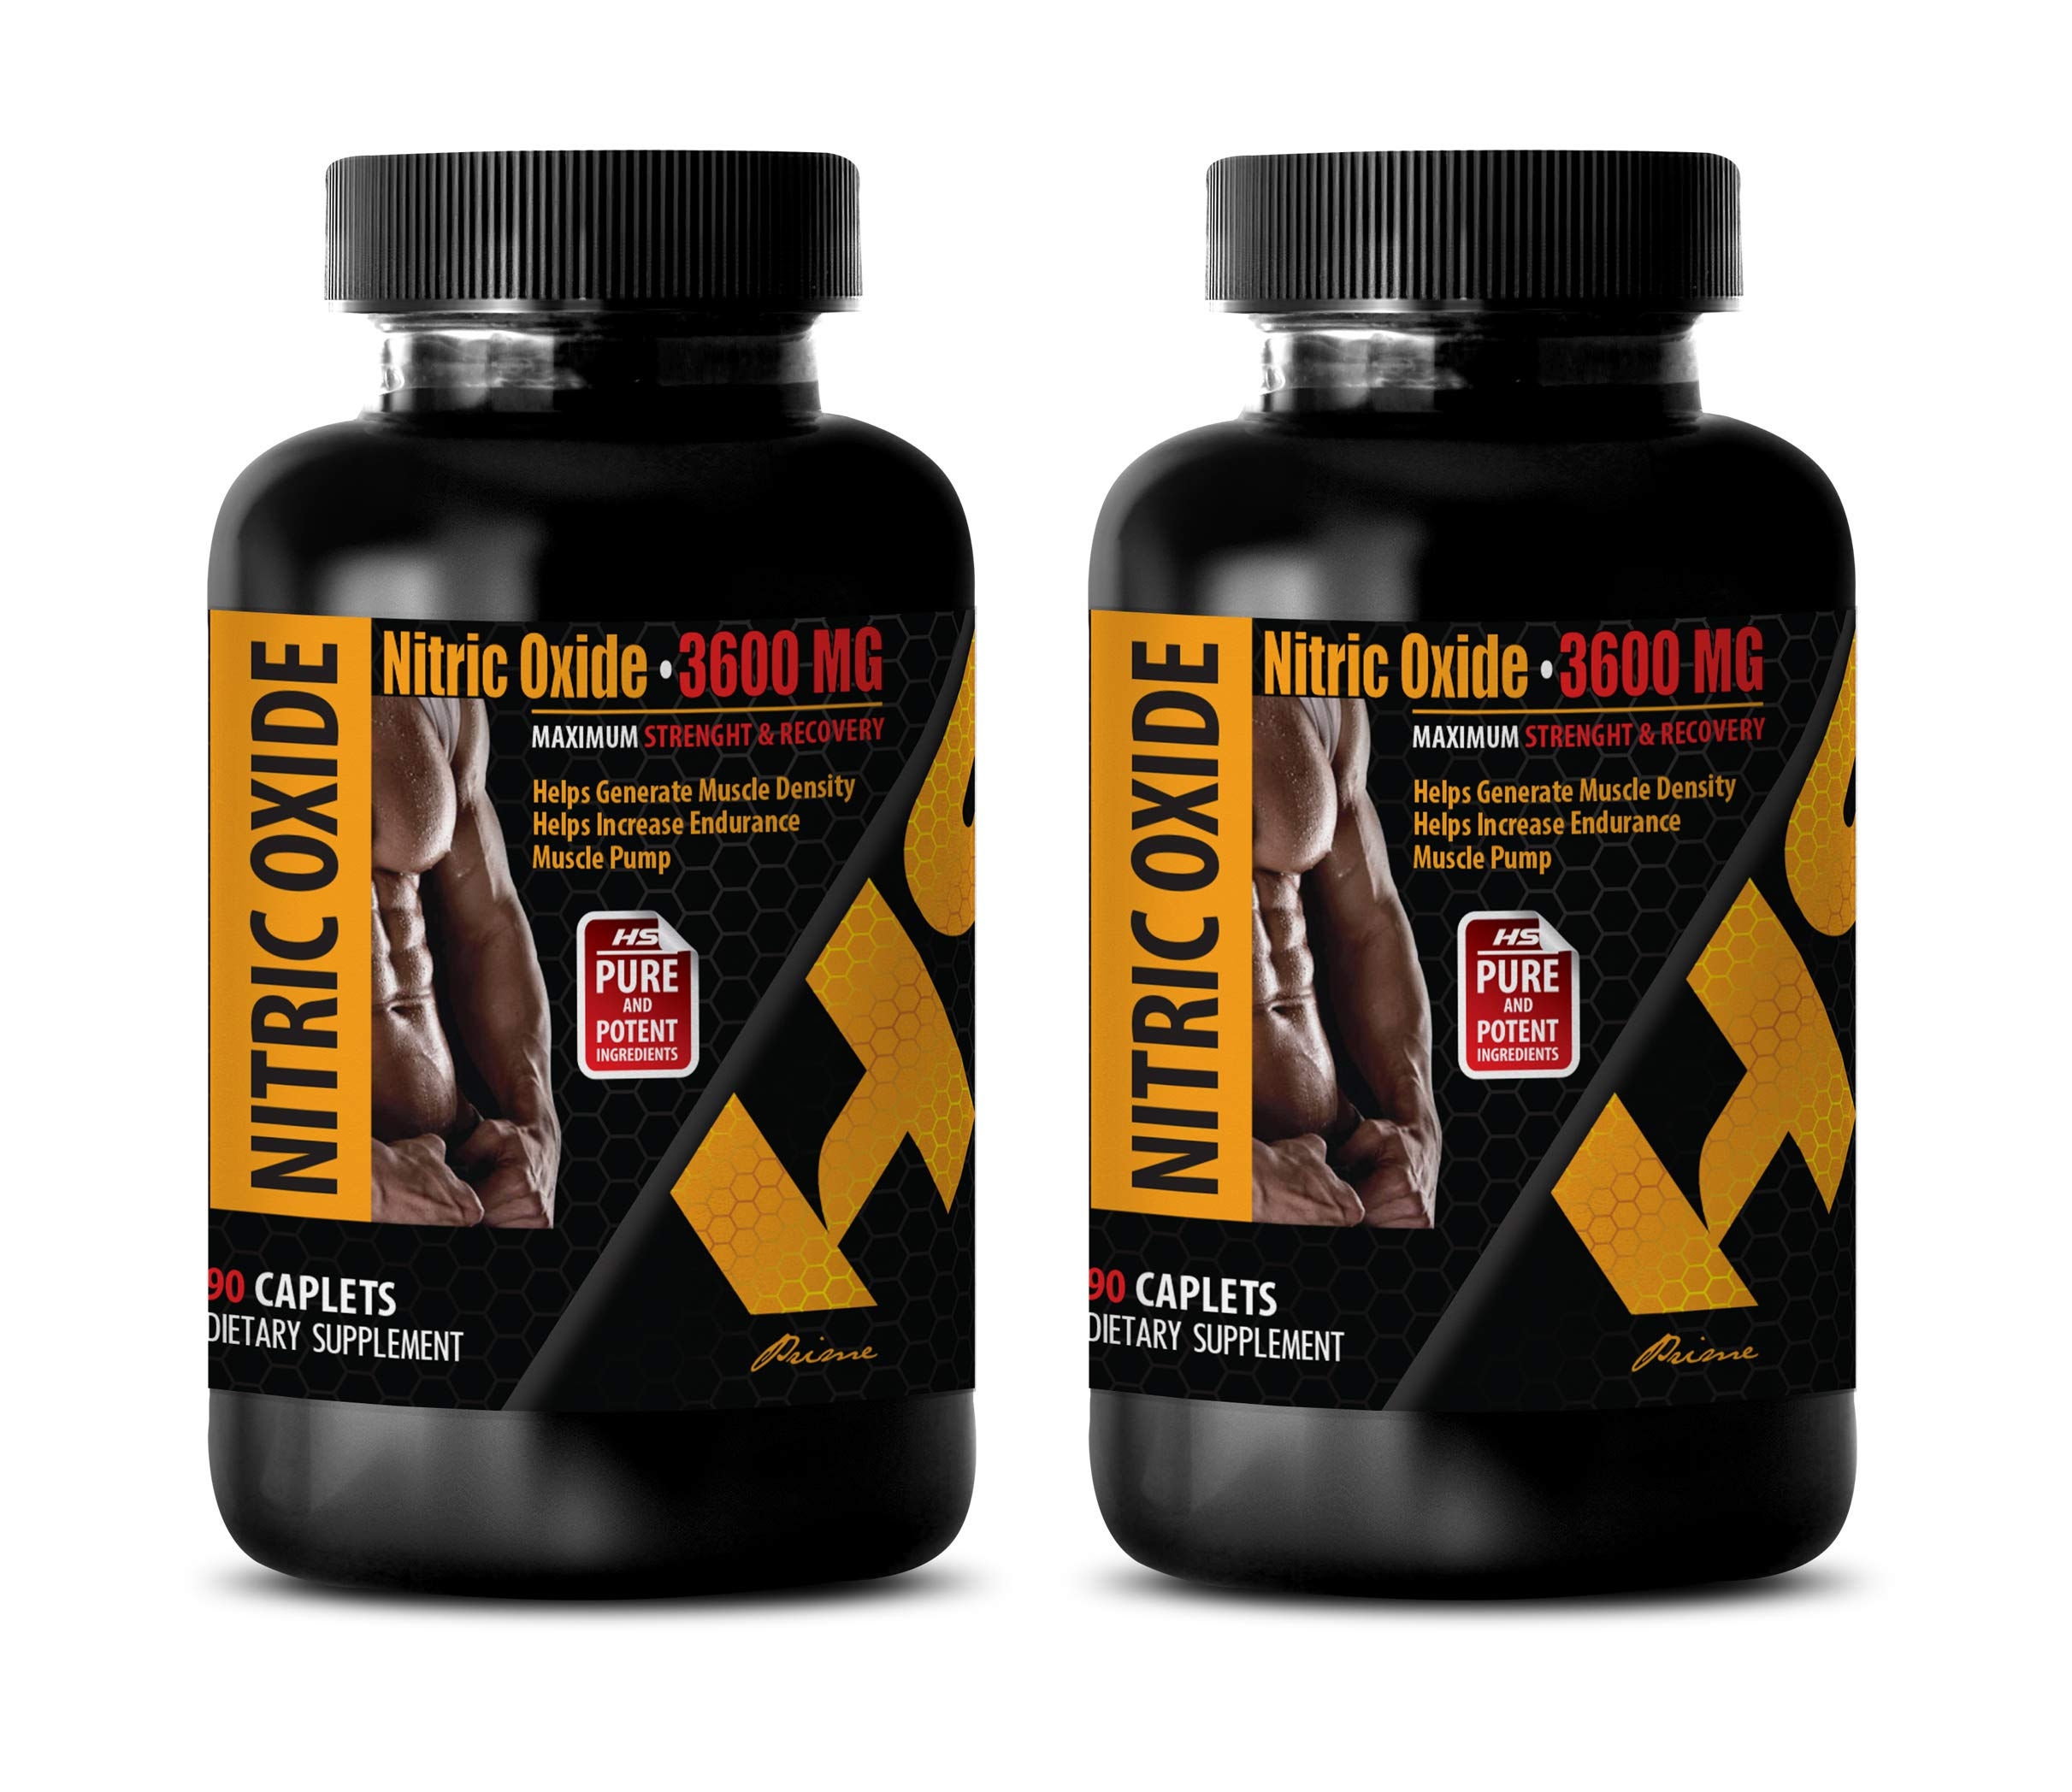 Muscle Booster Supplement - Nitric Oxide 3600 MG - Maximum Strength & Recovery - Nitric Oxide Formula - 2 Bottles 180 Caplets